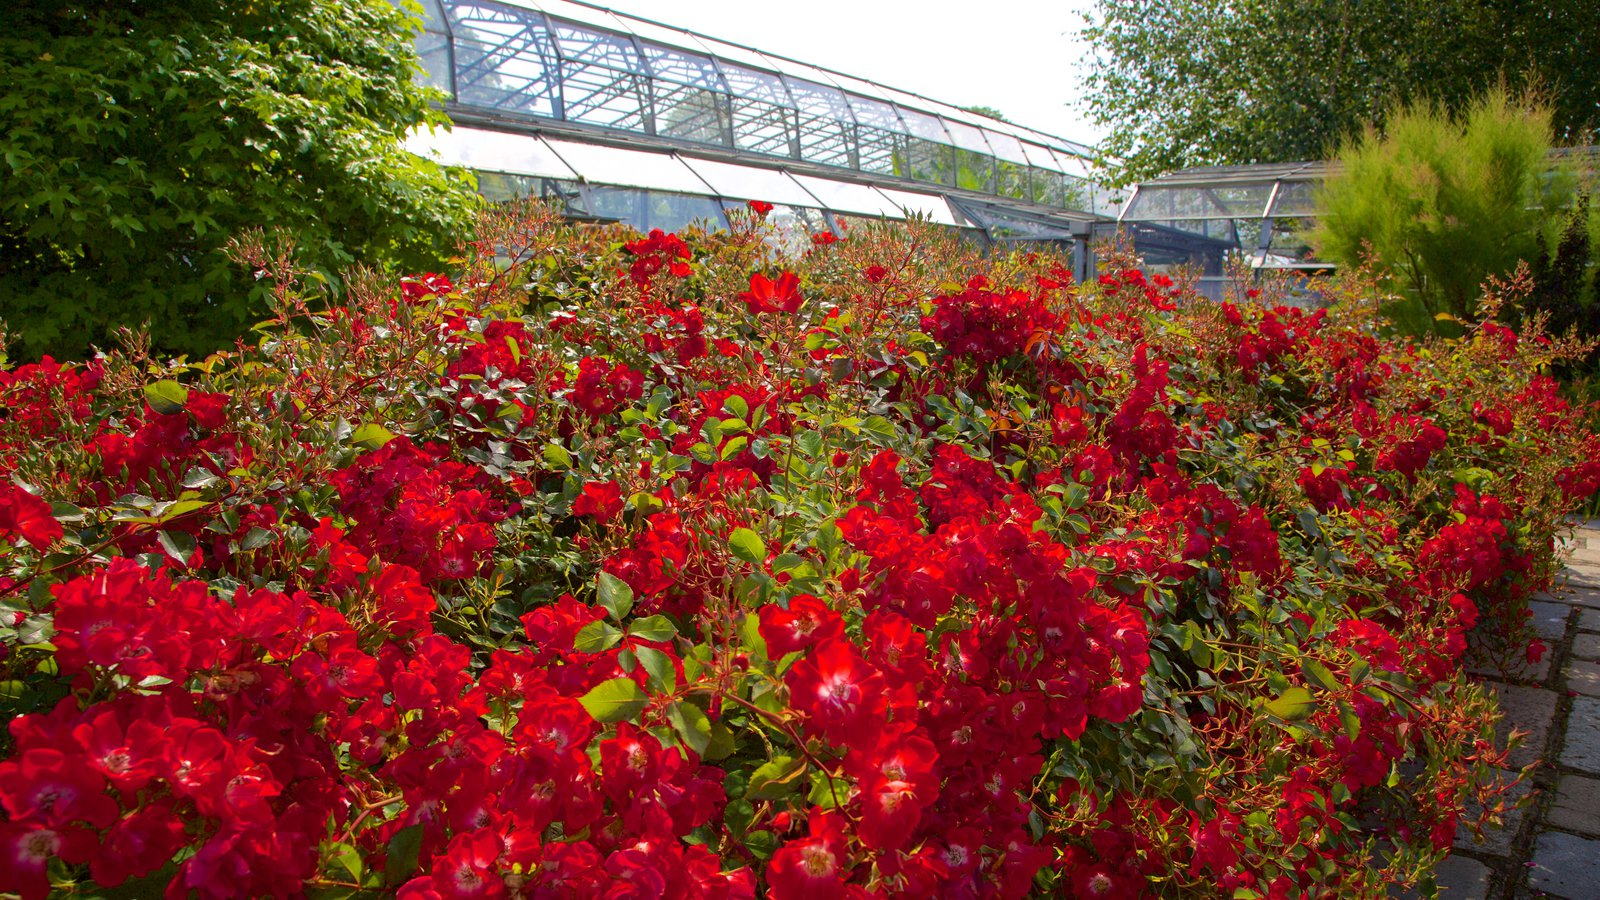 Duthie Park Winter Gardens which includes a park, flowers and wild flowers